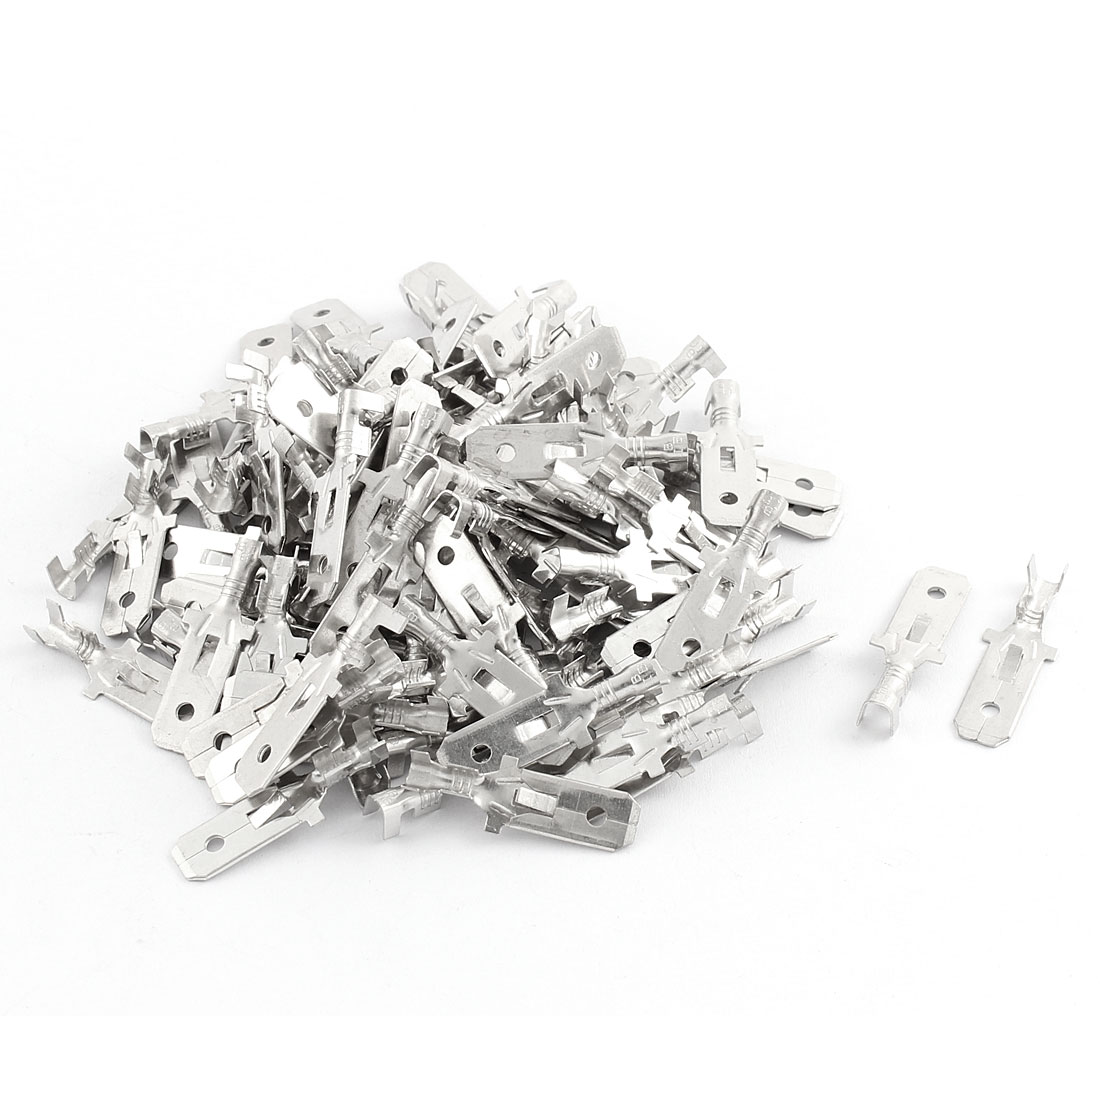 100 Pcs Metal 7.8Mm Male Spade Terminal For Nylon Mult Pin